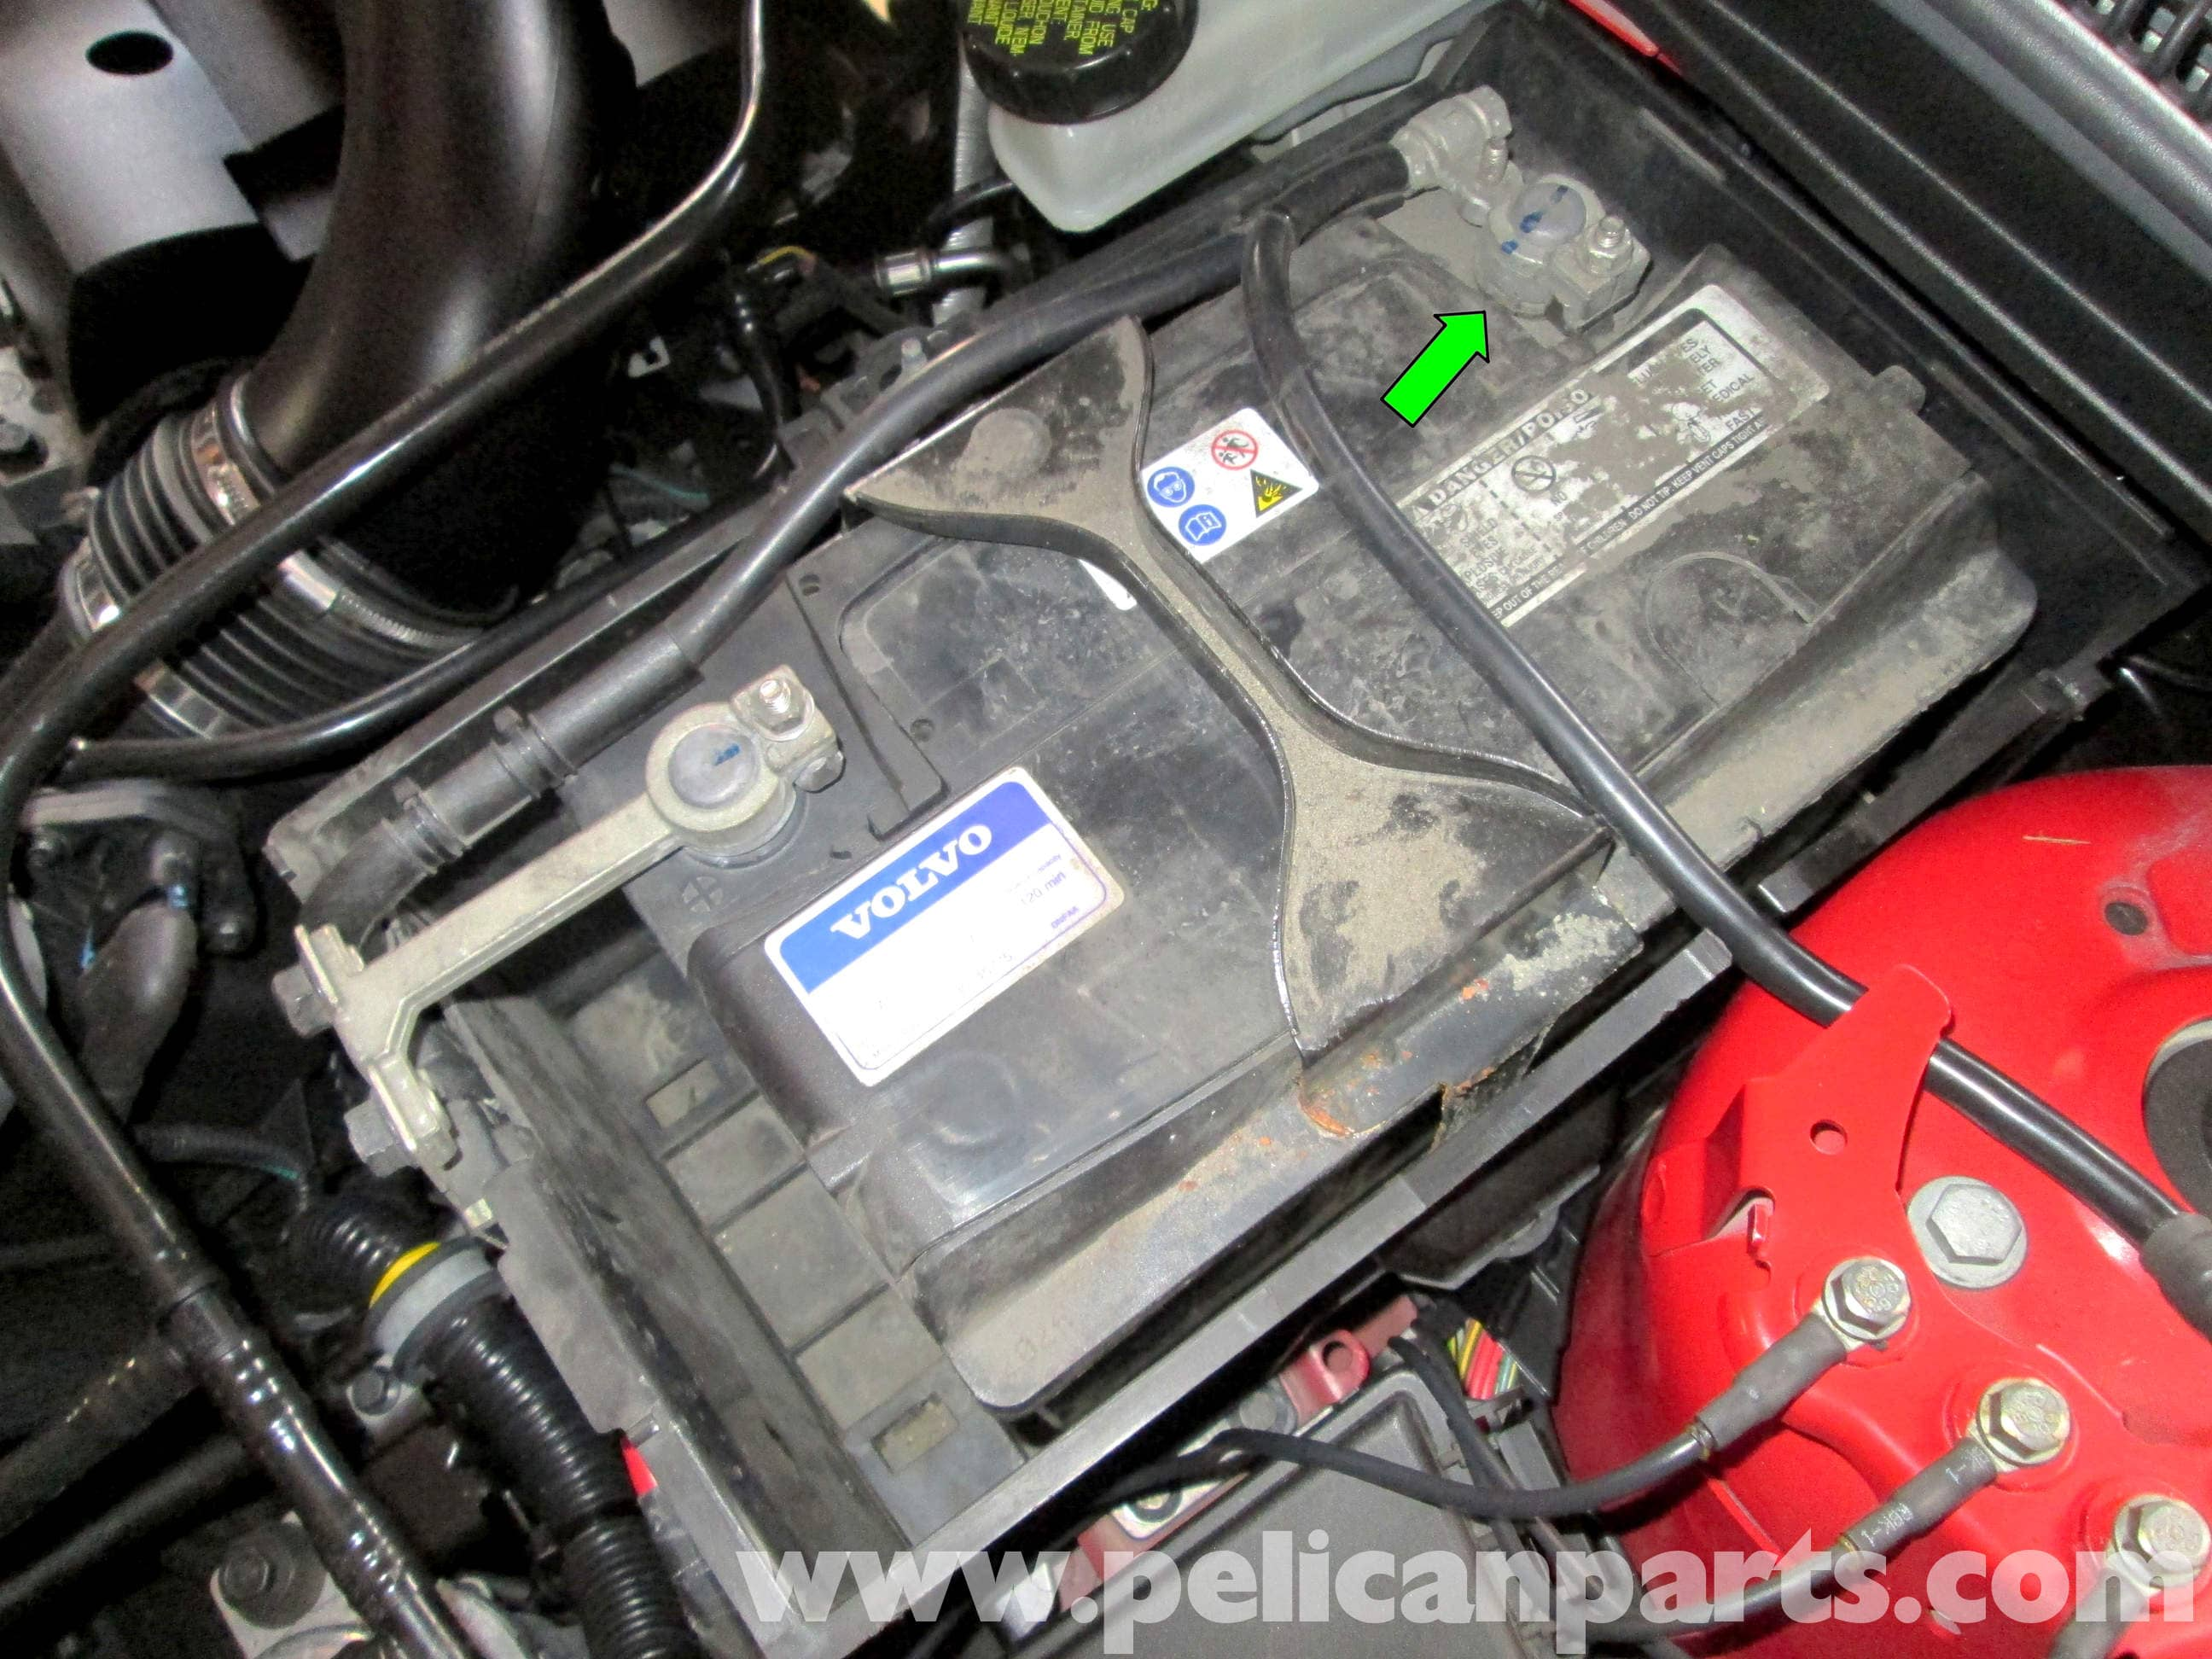 volvo c30 battery replacement 2007 2013 pelican parts. Black Bedroom Furniture Sets. Home Design Ideas